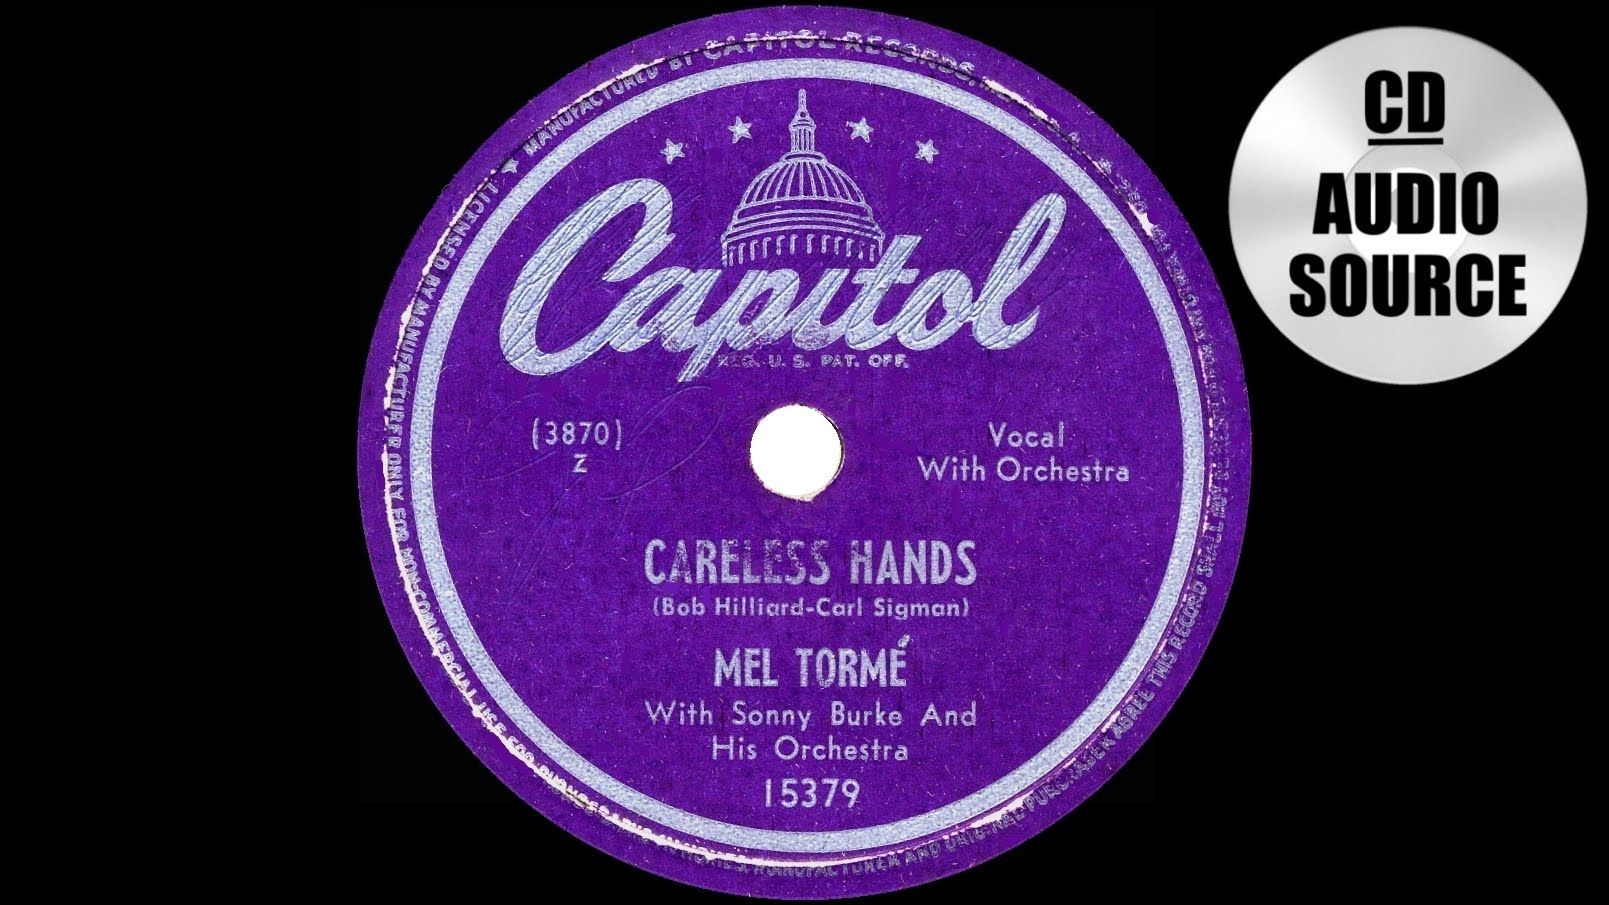 1949 HITS ARCHIVE: Careless Hands - Mel Torme (a #1 record)